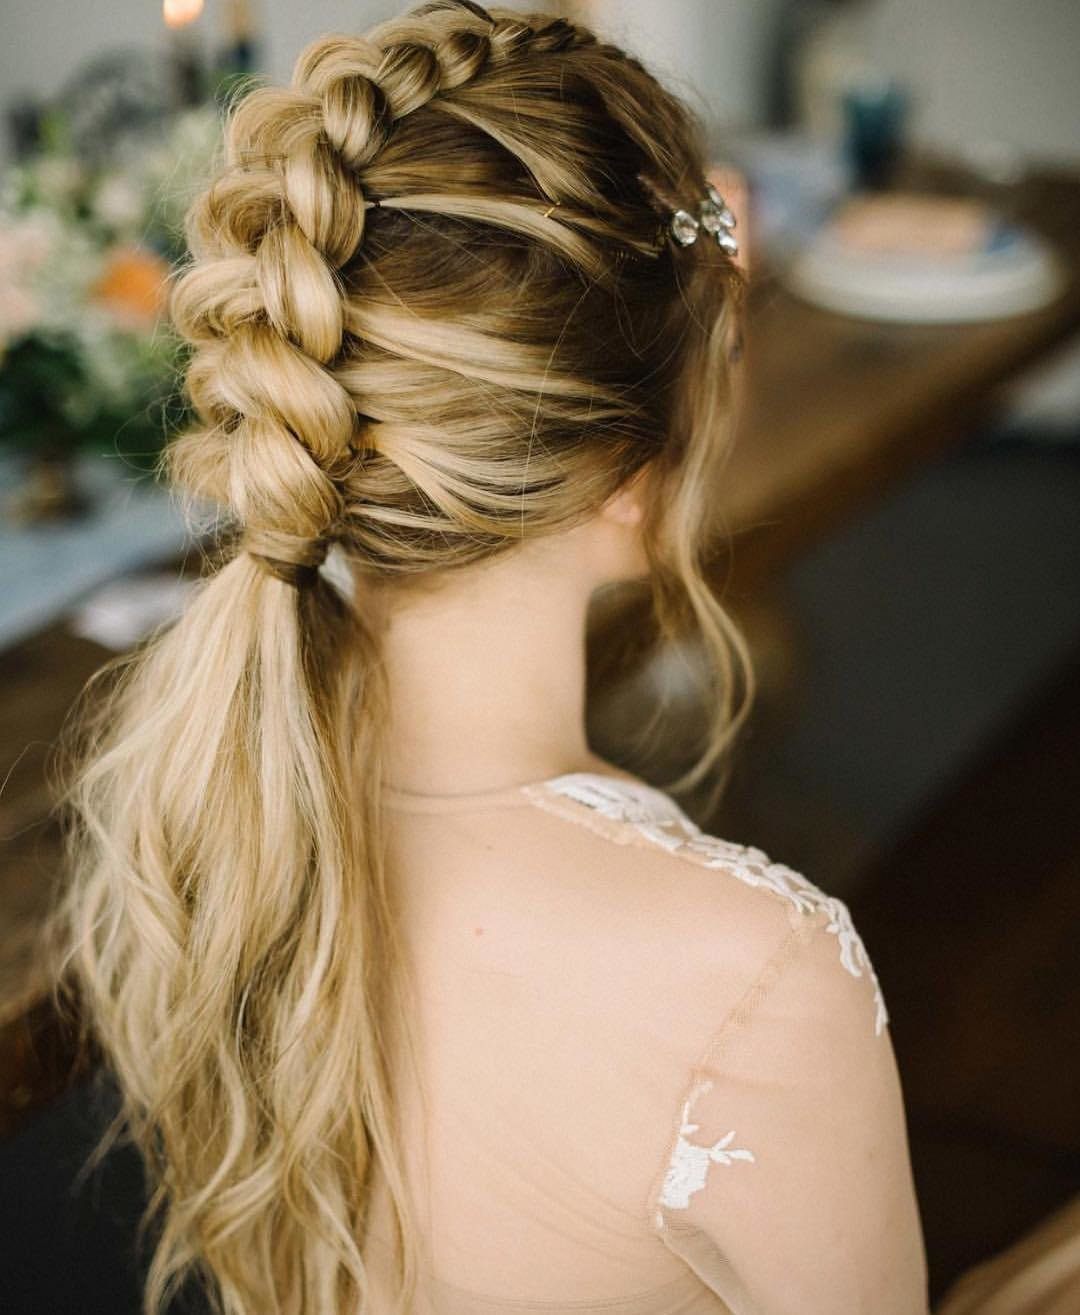 New 10 Braided Hairstyles For Long Hair Weddings Festivals Ideas With Pictures